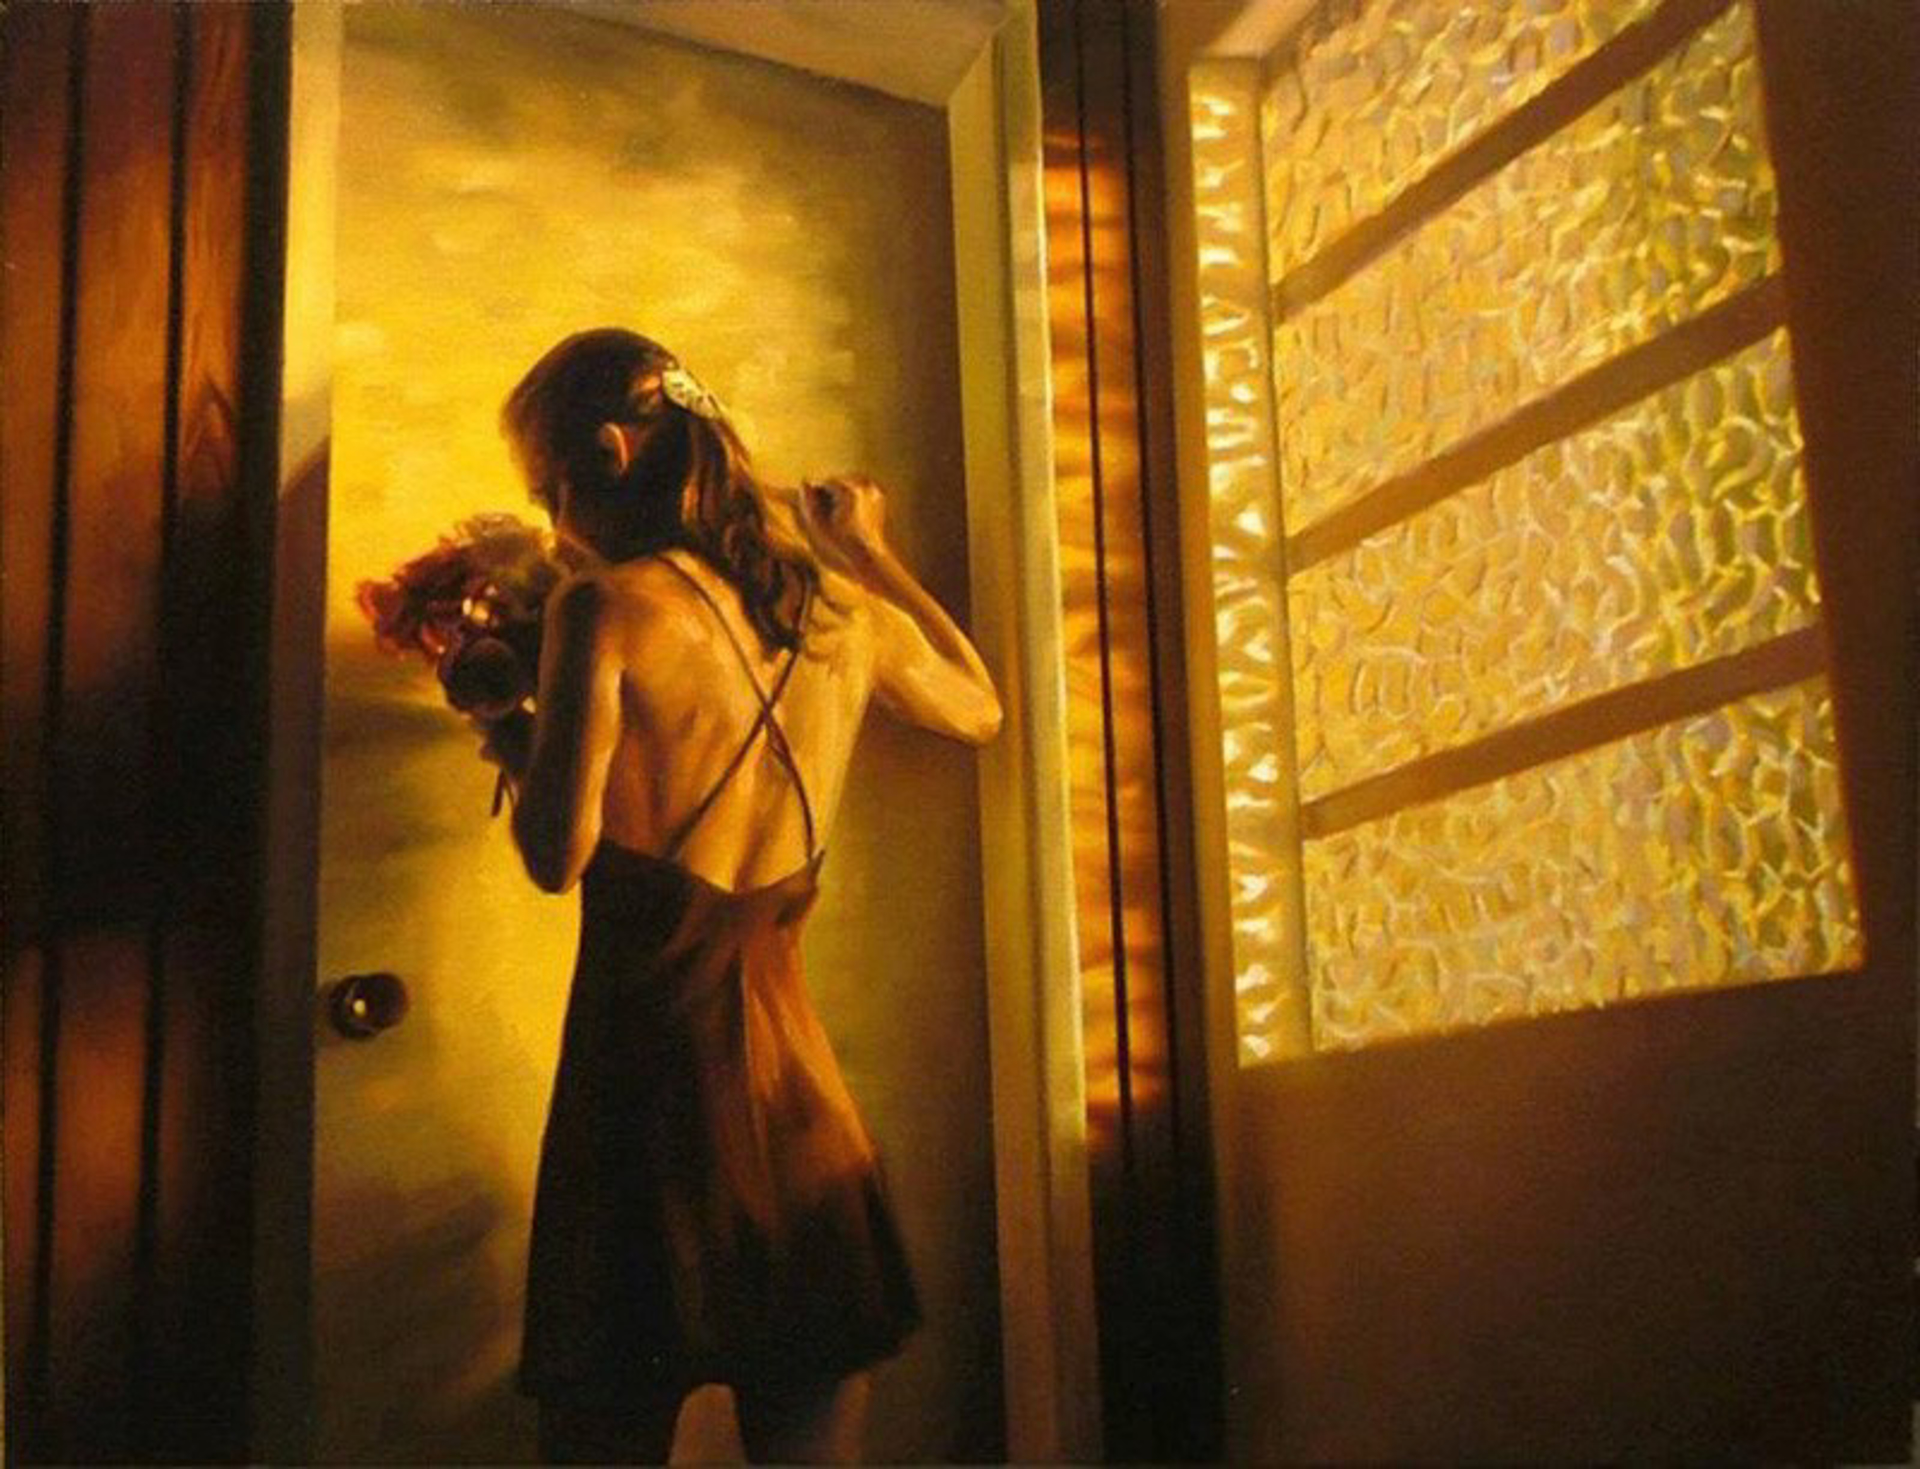 The Goings-On In the House (S/N) by Carrie Graber